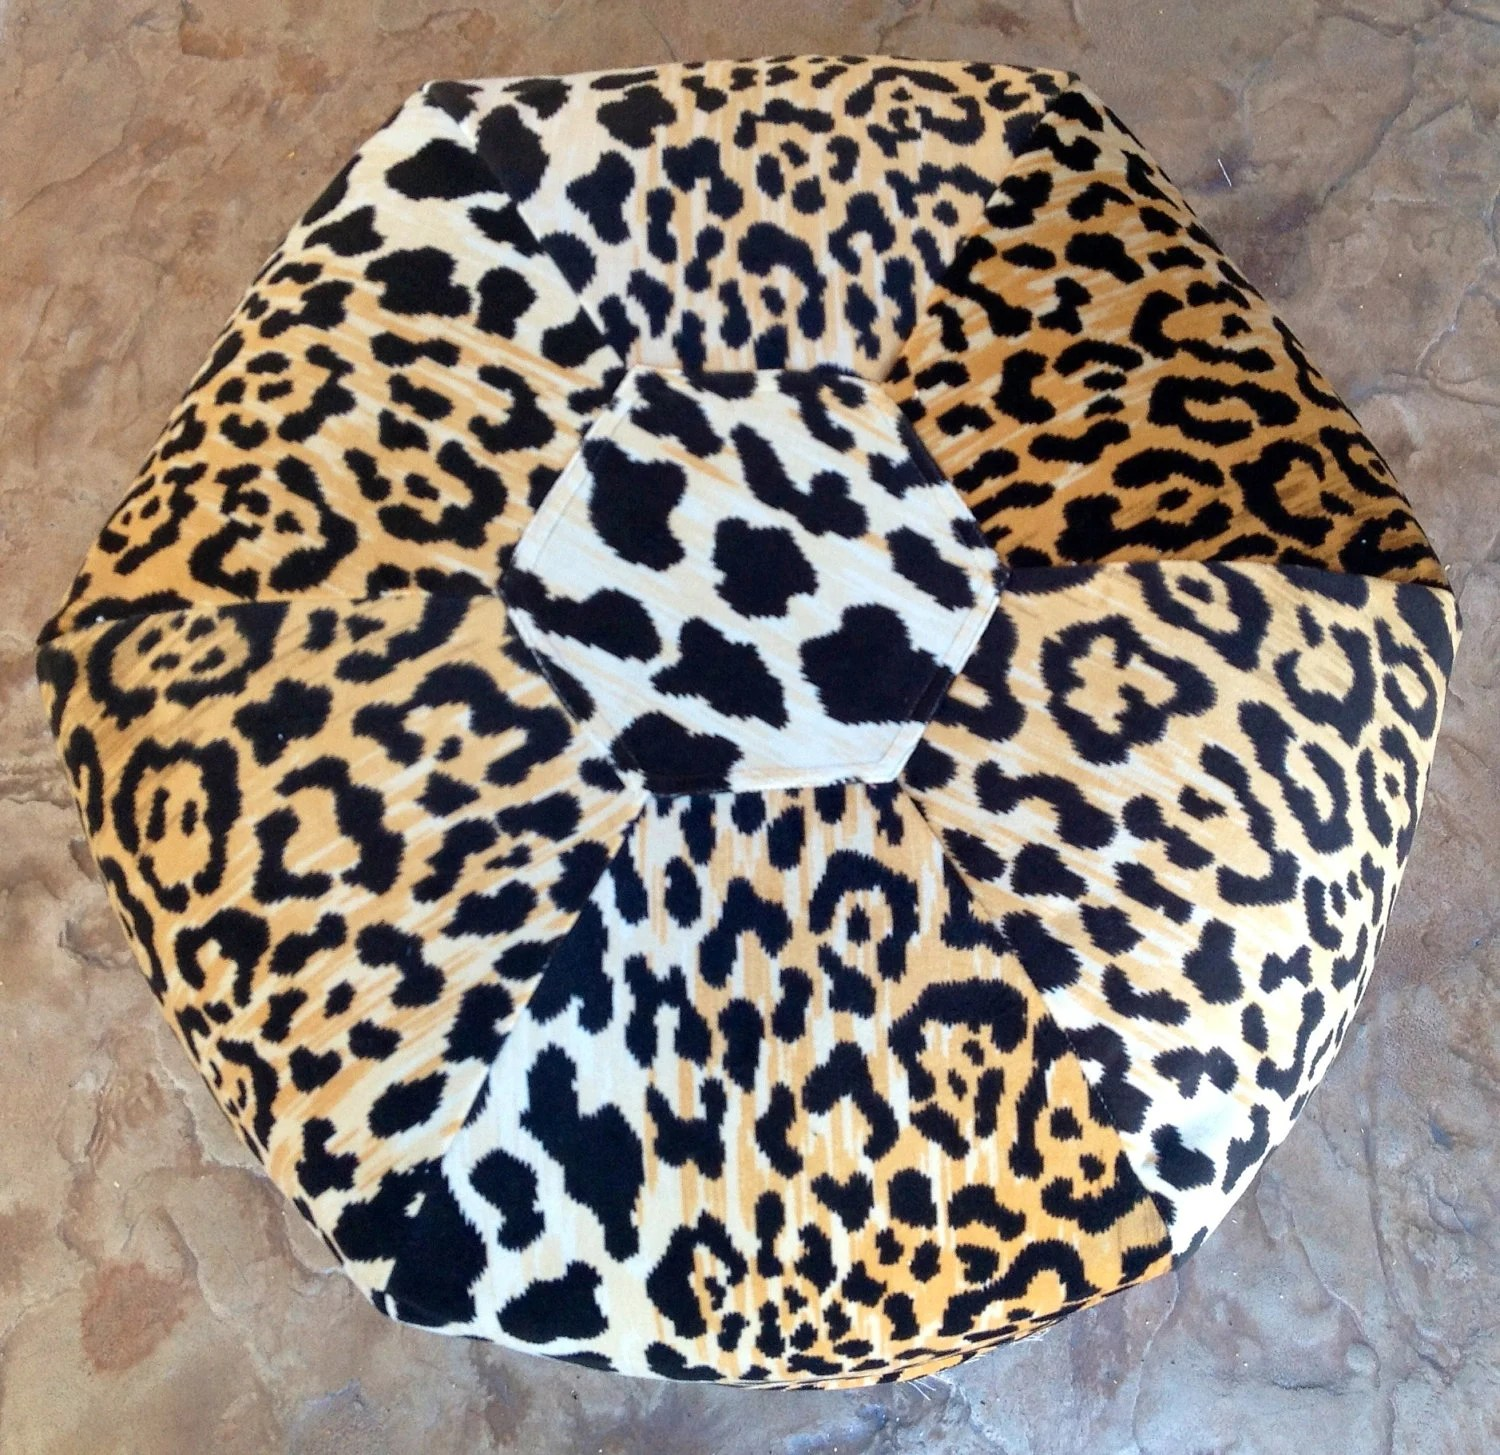 cheetah print bean bag chair walmart stackable chairs unavailable listing on etsy